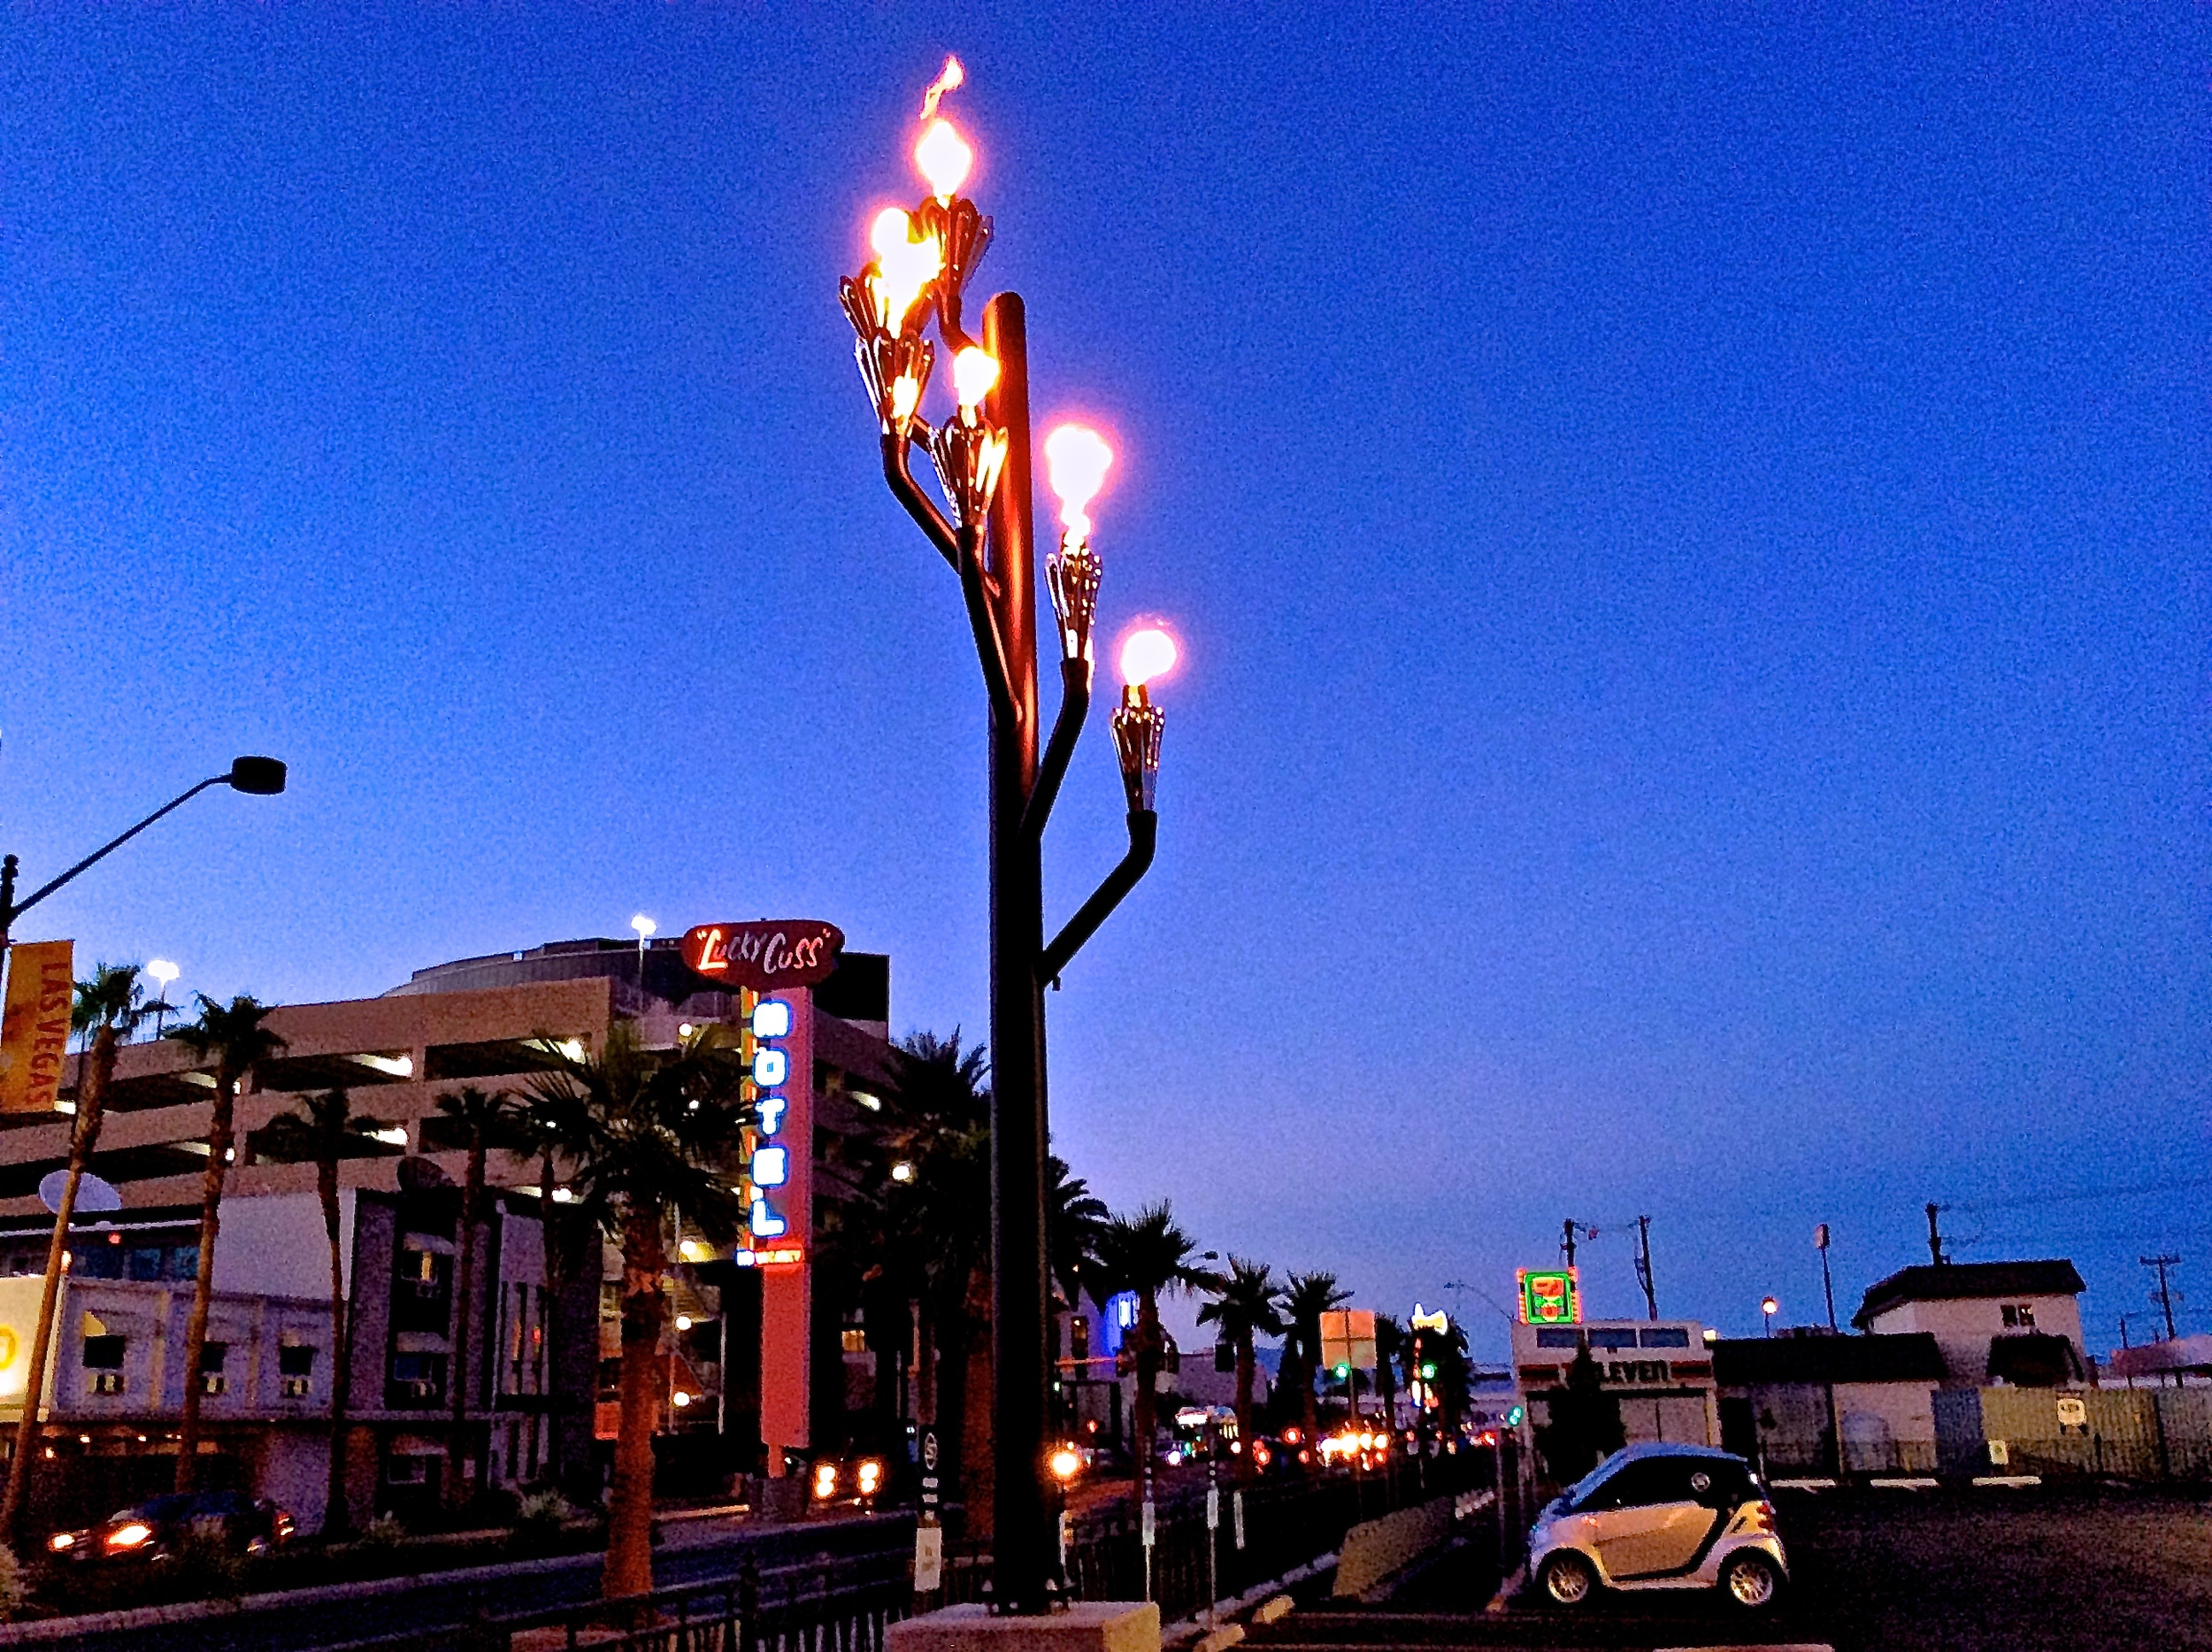 The Tree of Life street light fires weeknights 6-11pm and weekends 6pm-midnight